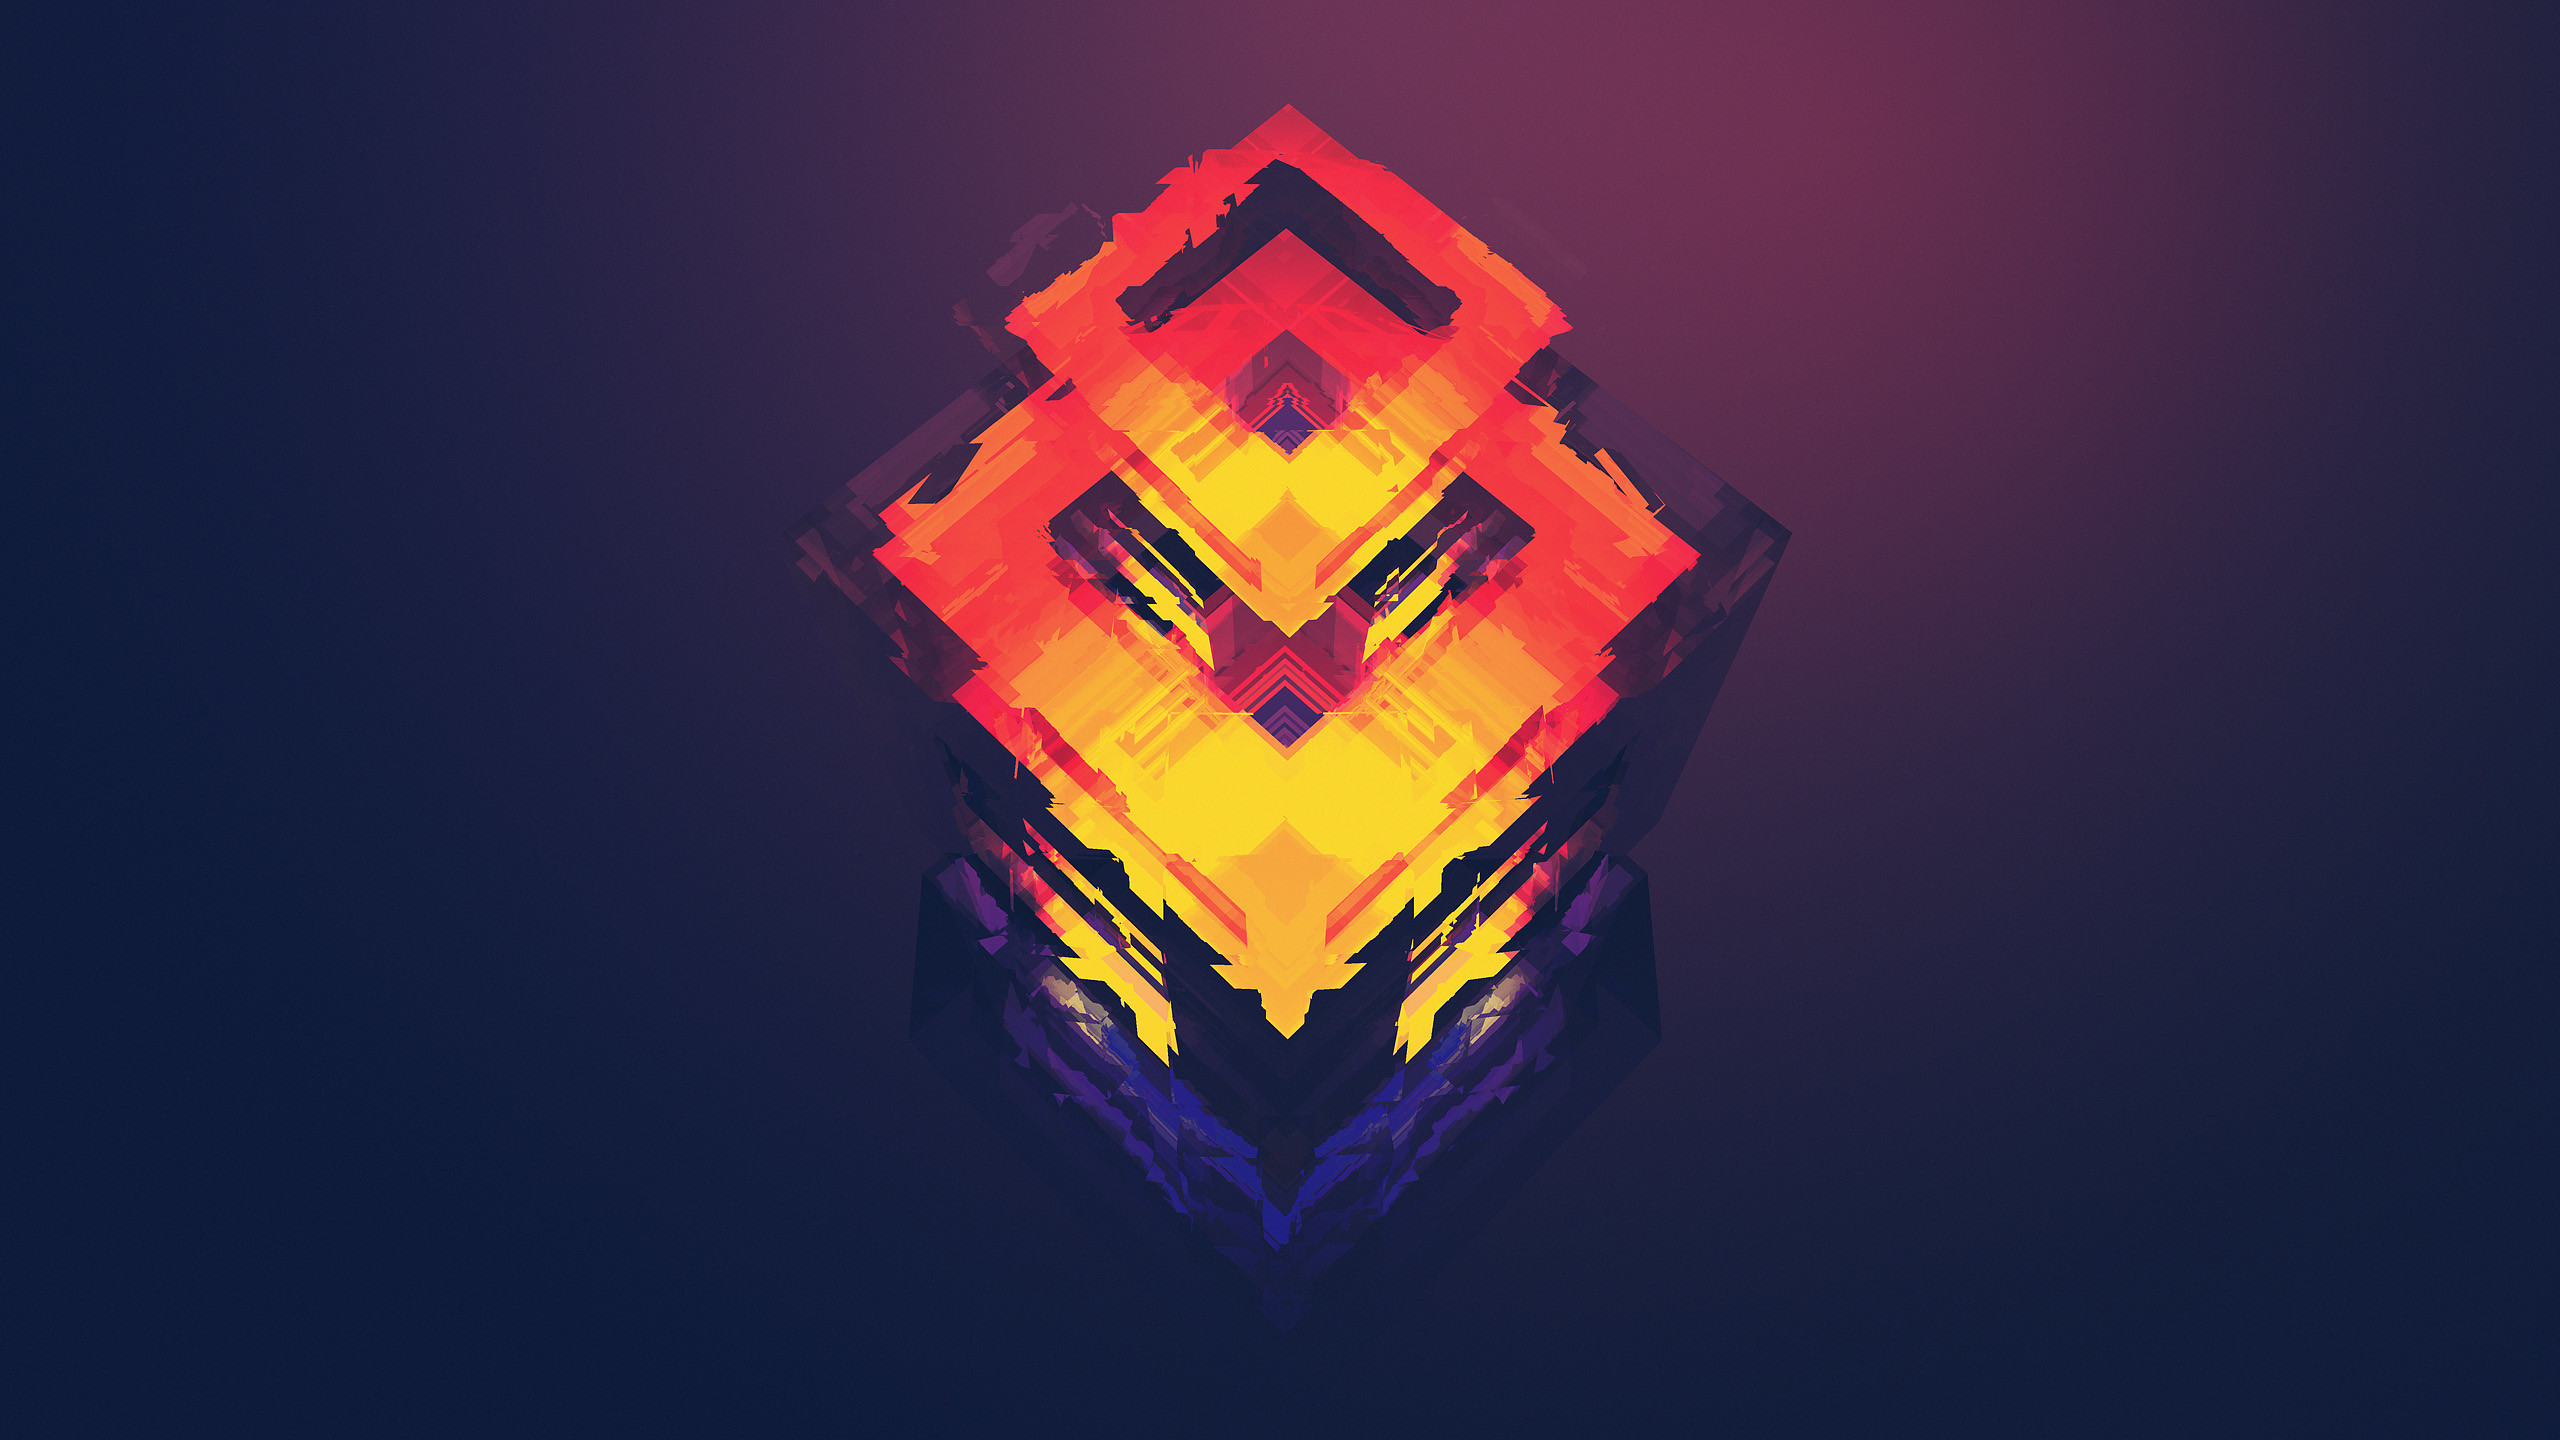 Ghost II wallpaper, simple minimalistic wallpaper, colorful shapes .